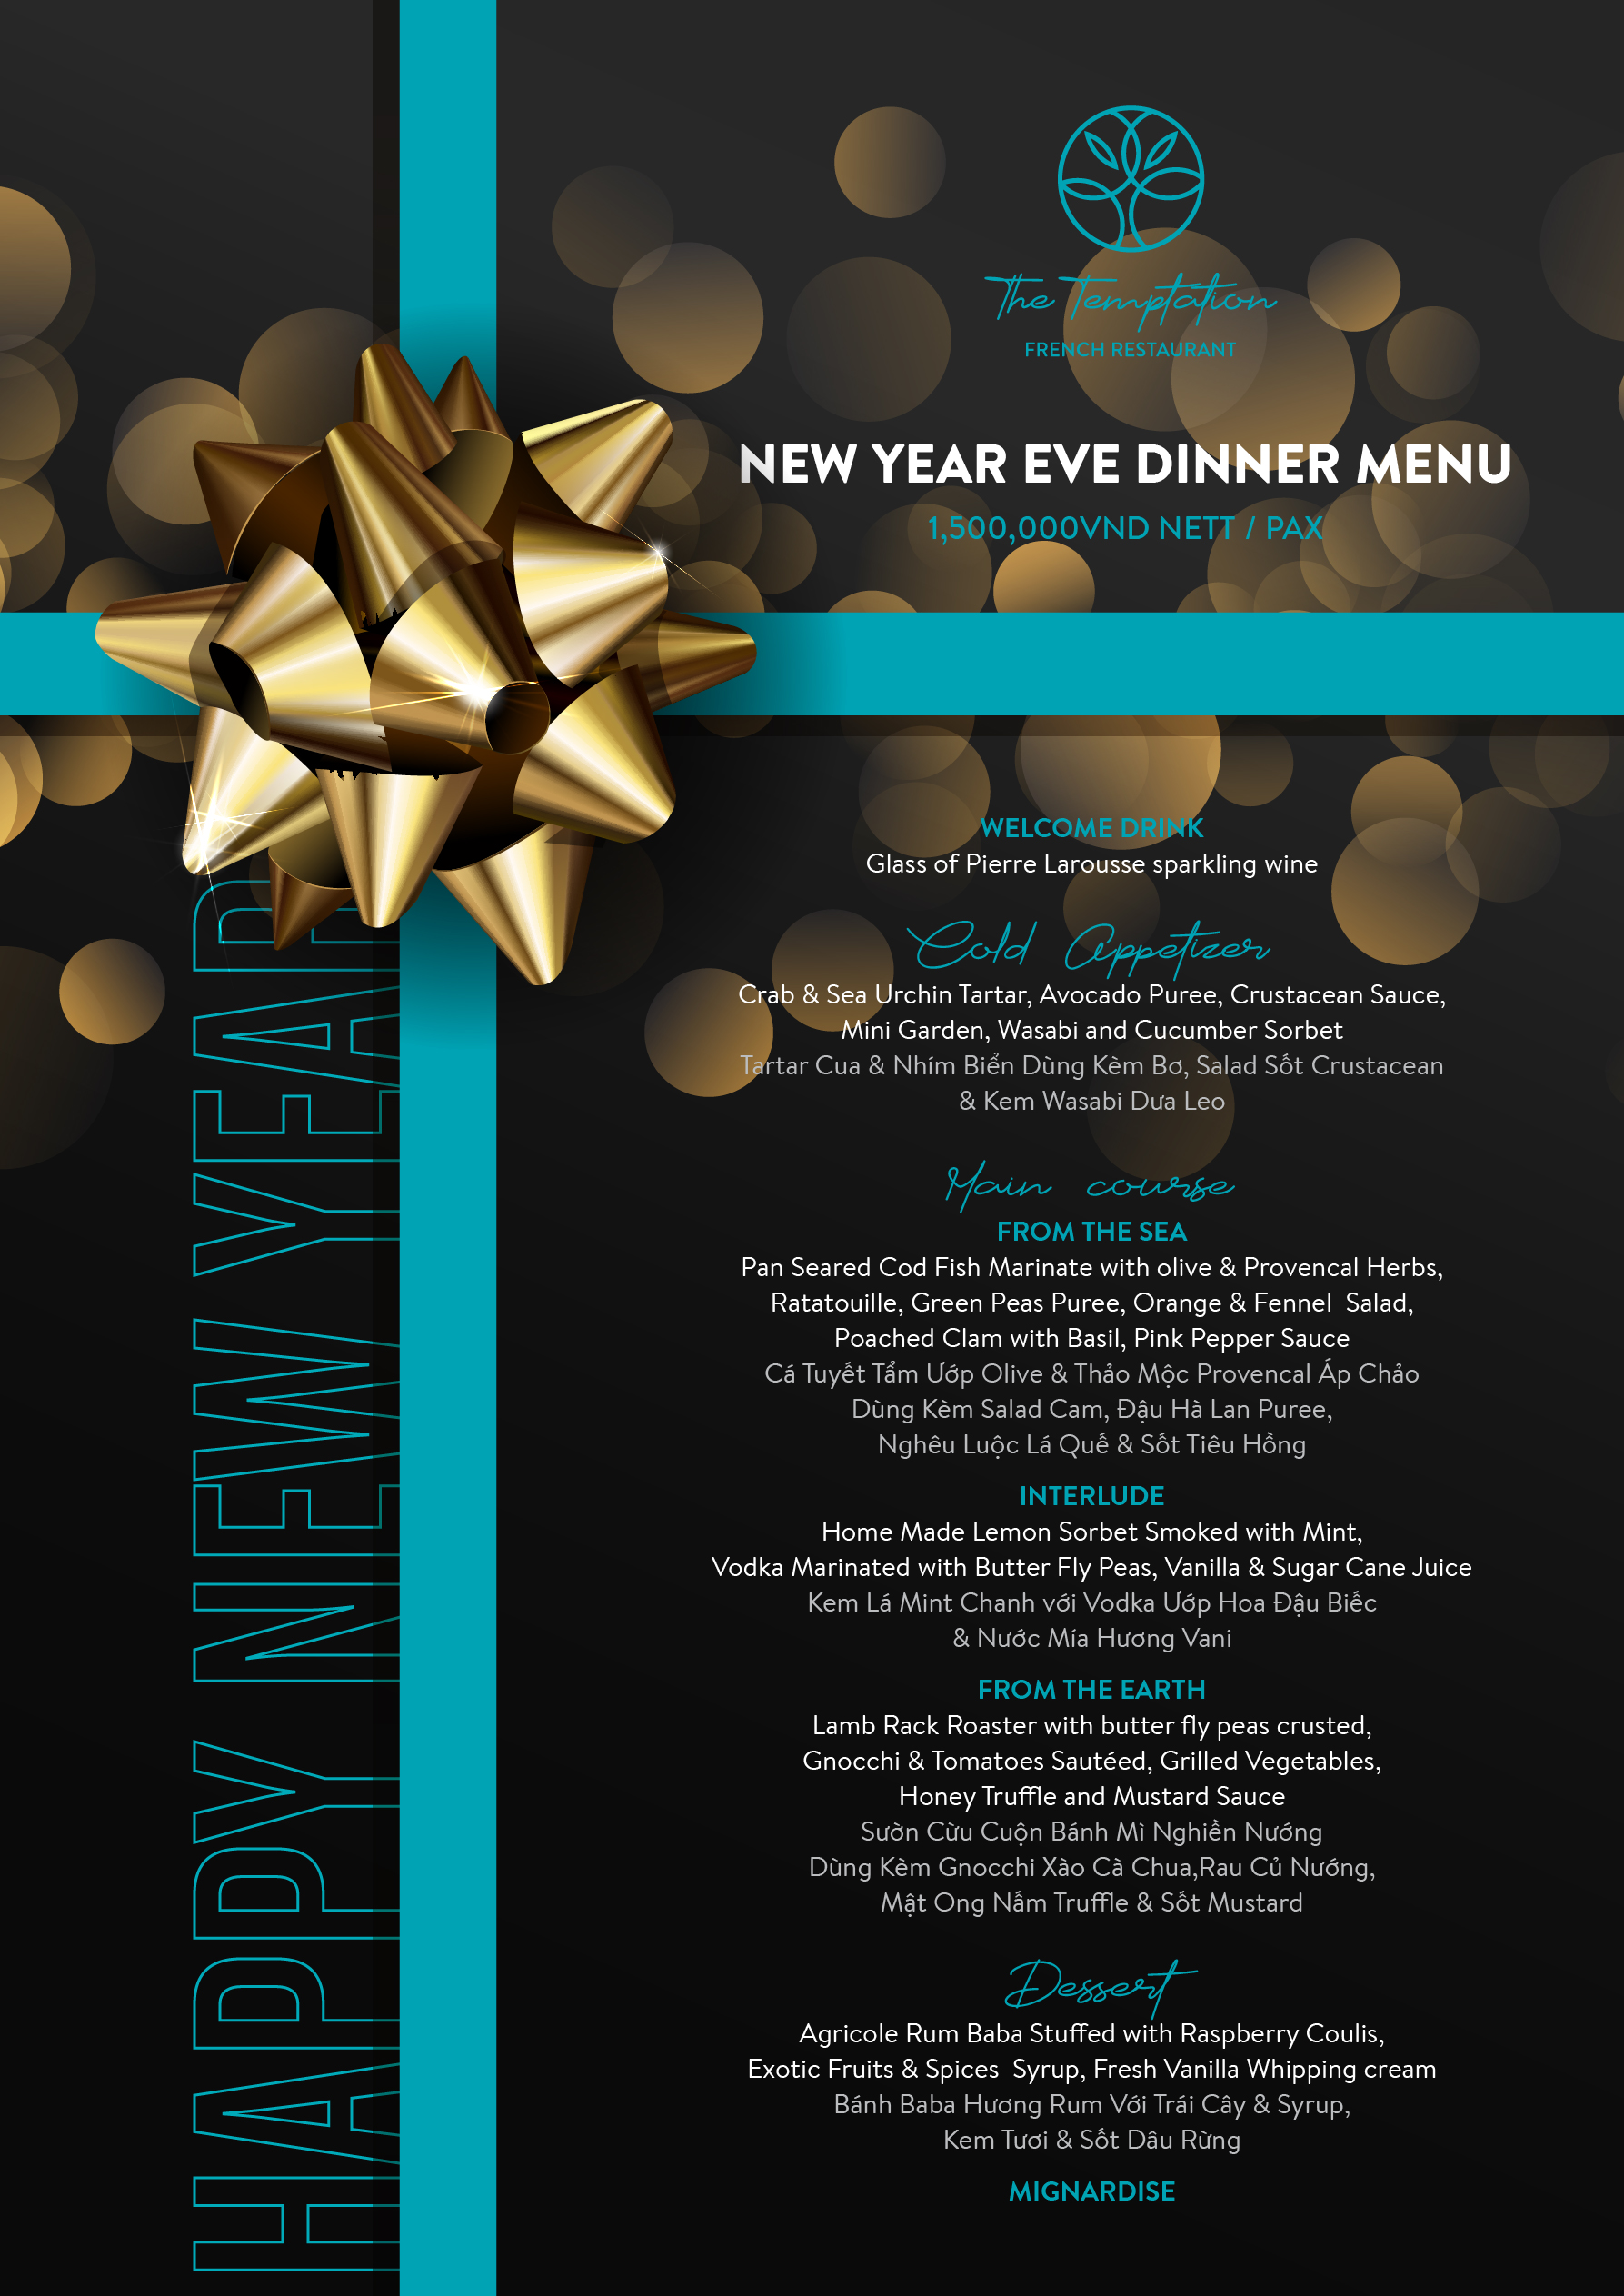 The Temptation-New Year Menu 2020